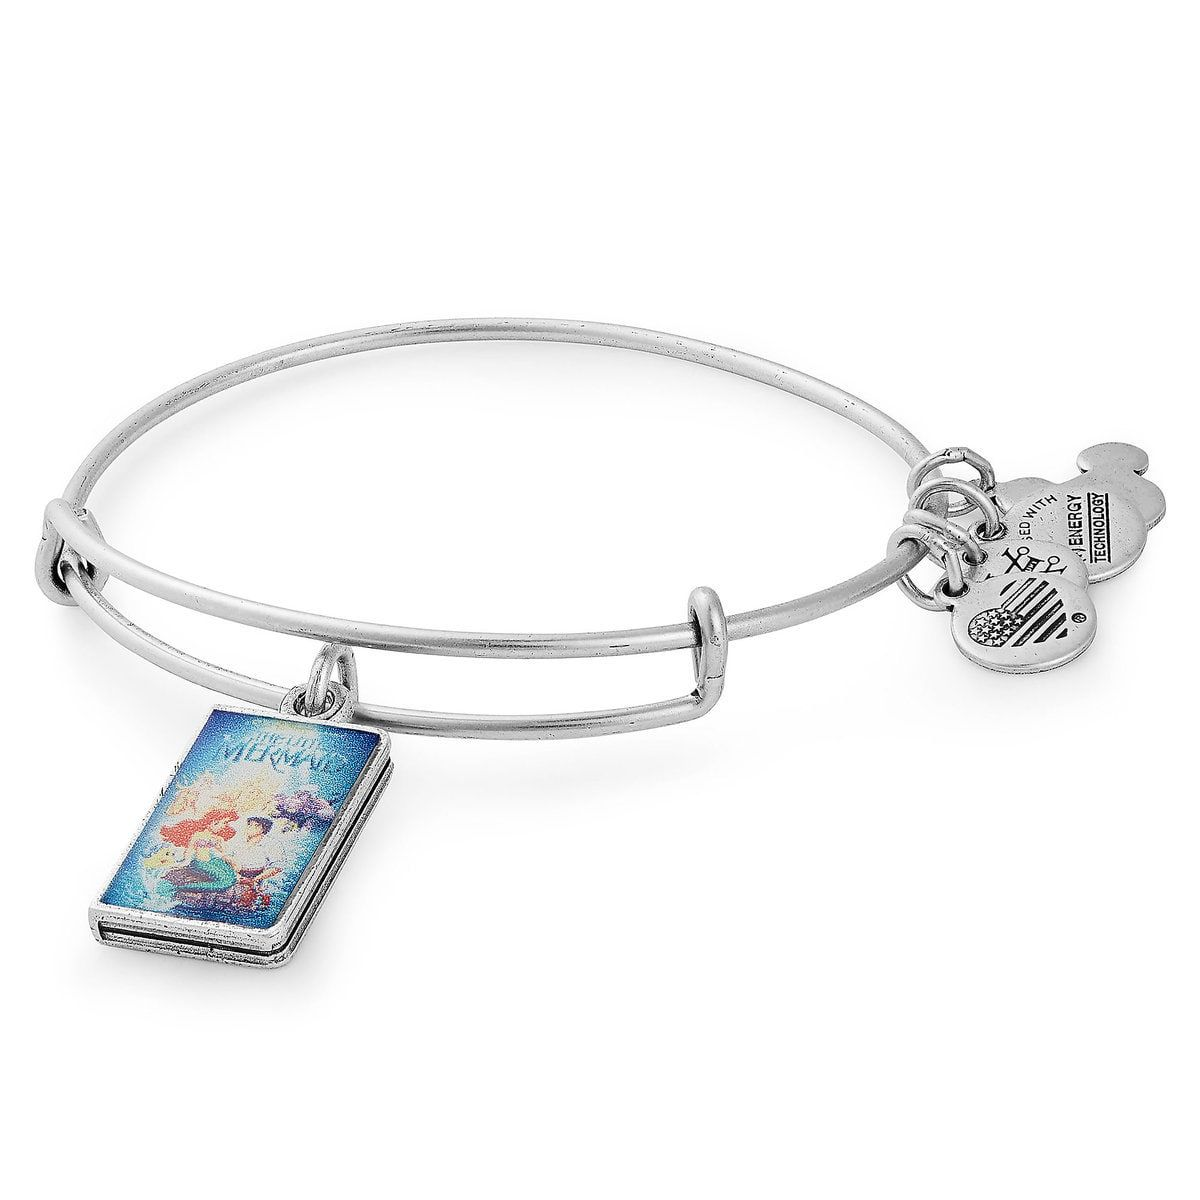 The Little Mermaid Vhs Case Bangle By Alex And Ani